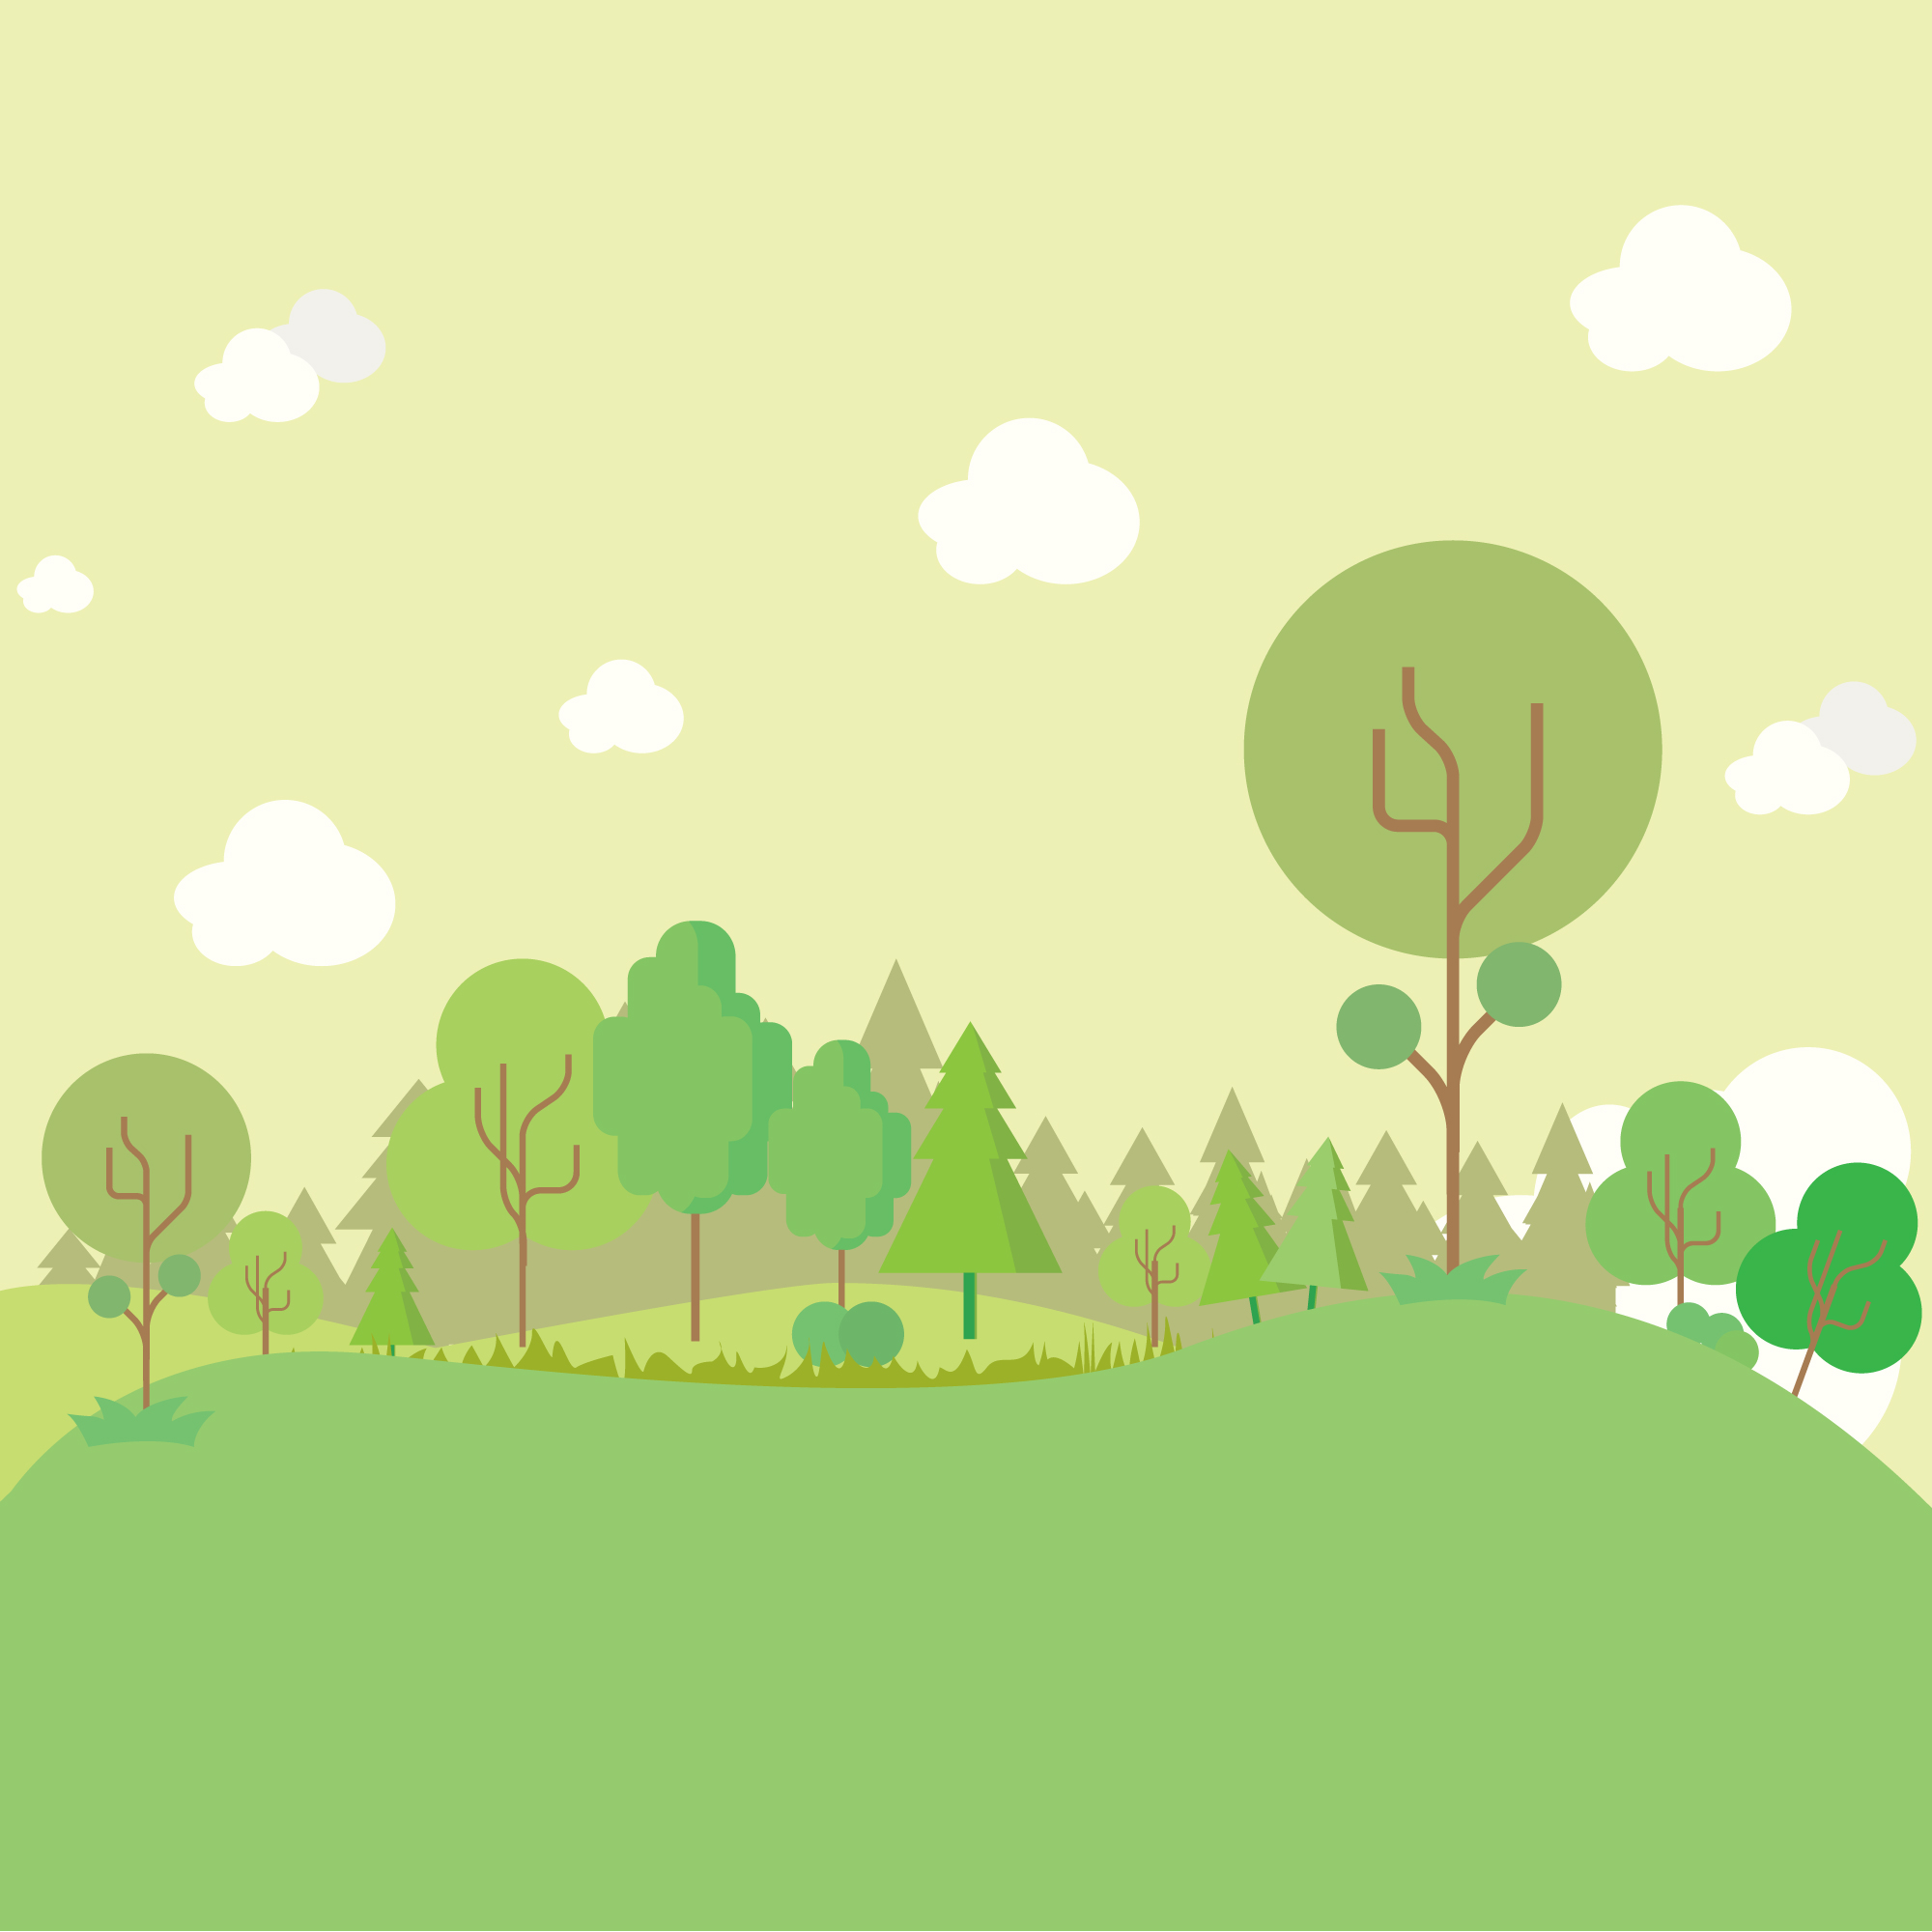 Meadow background design